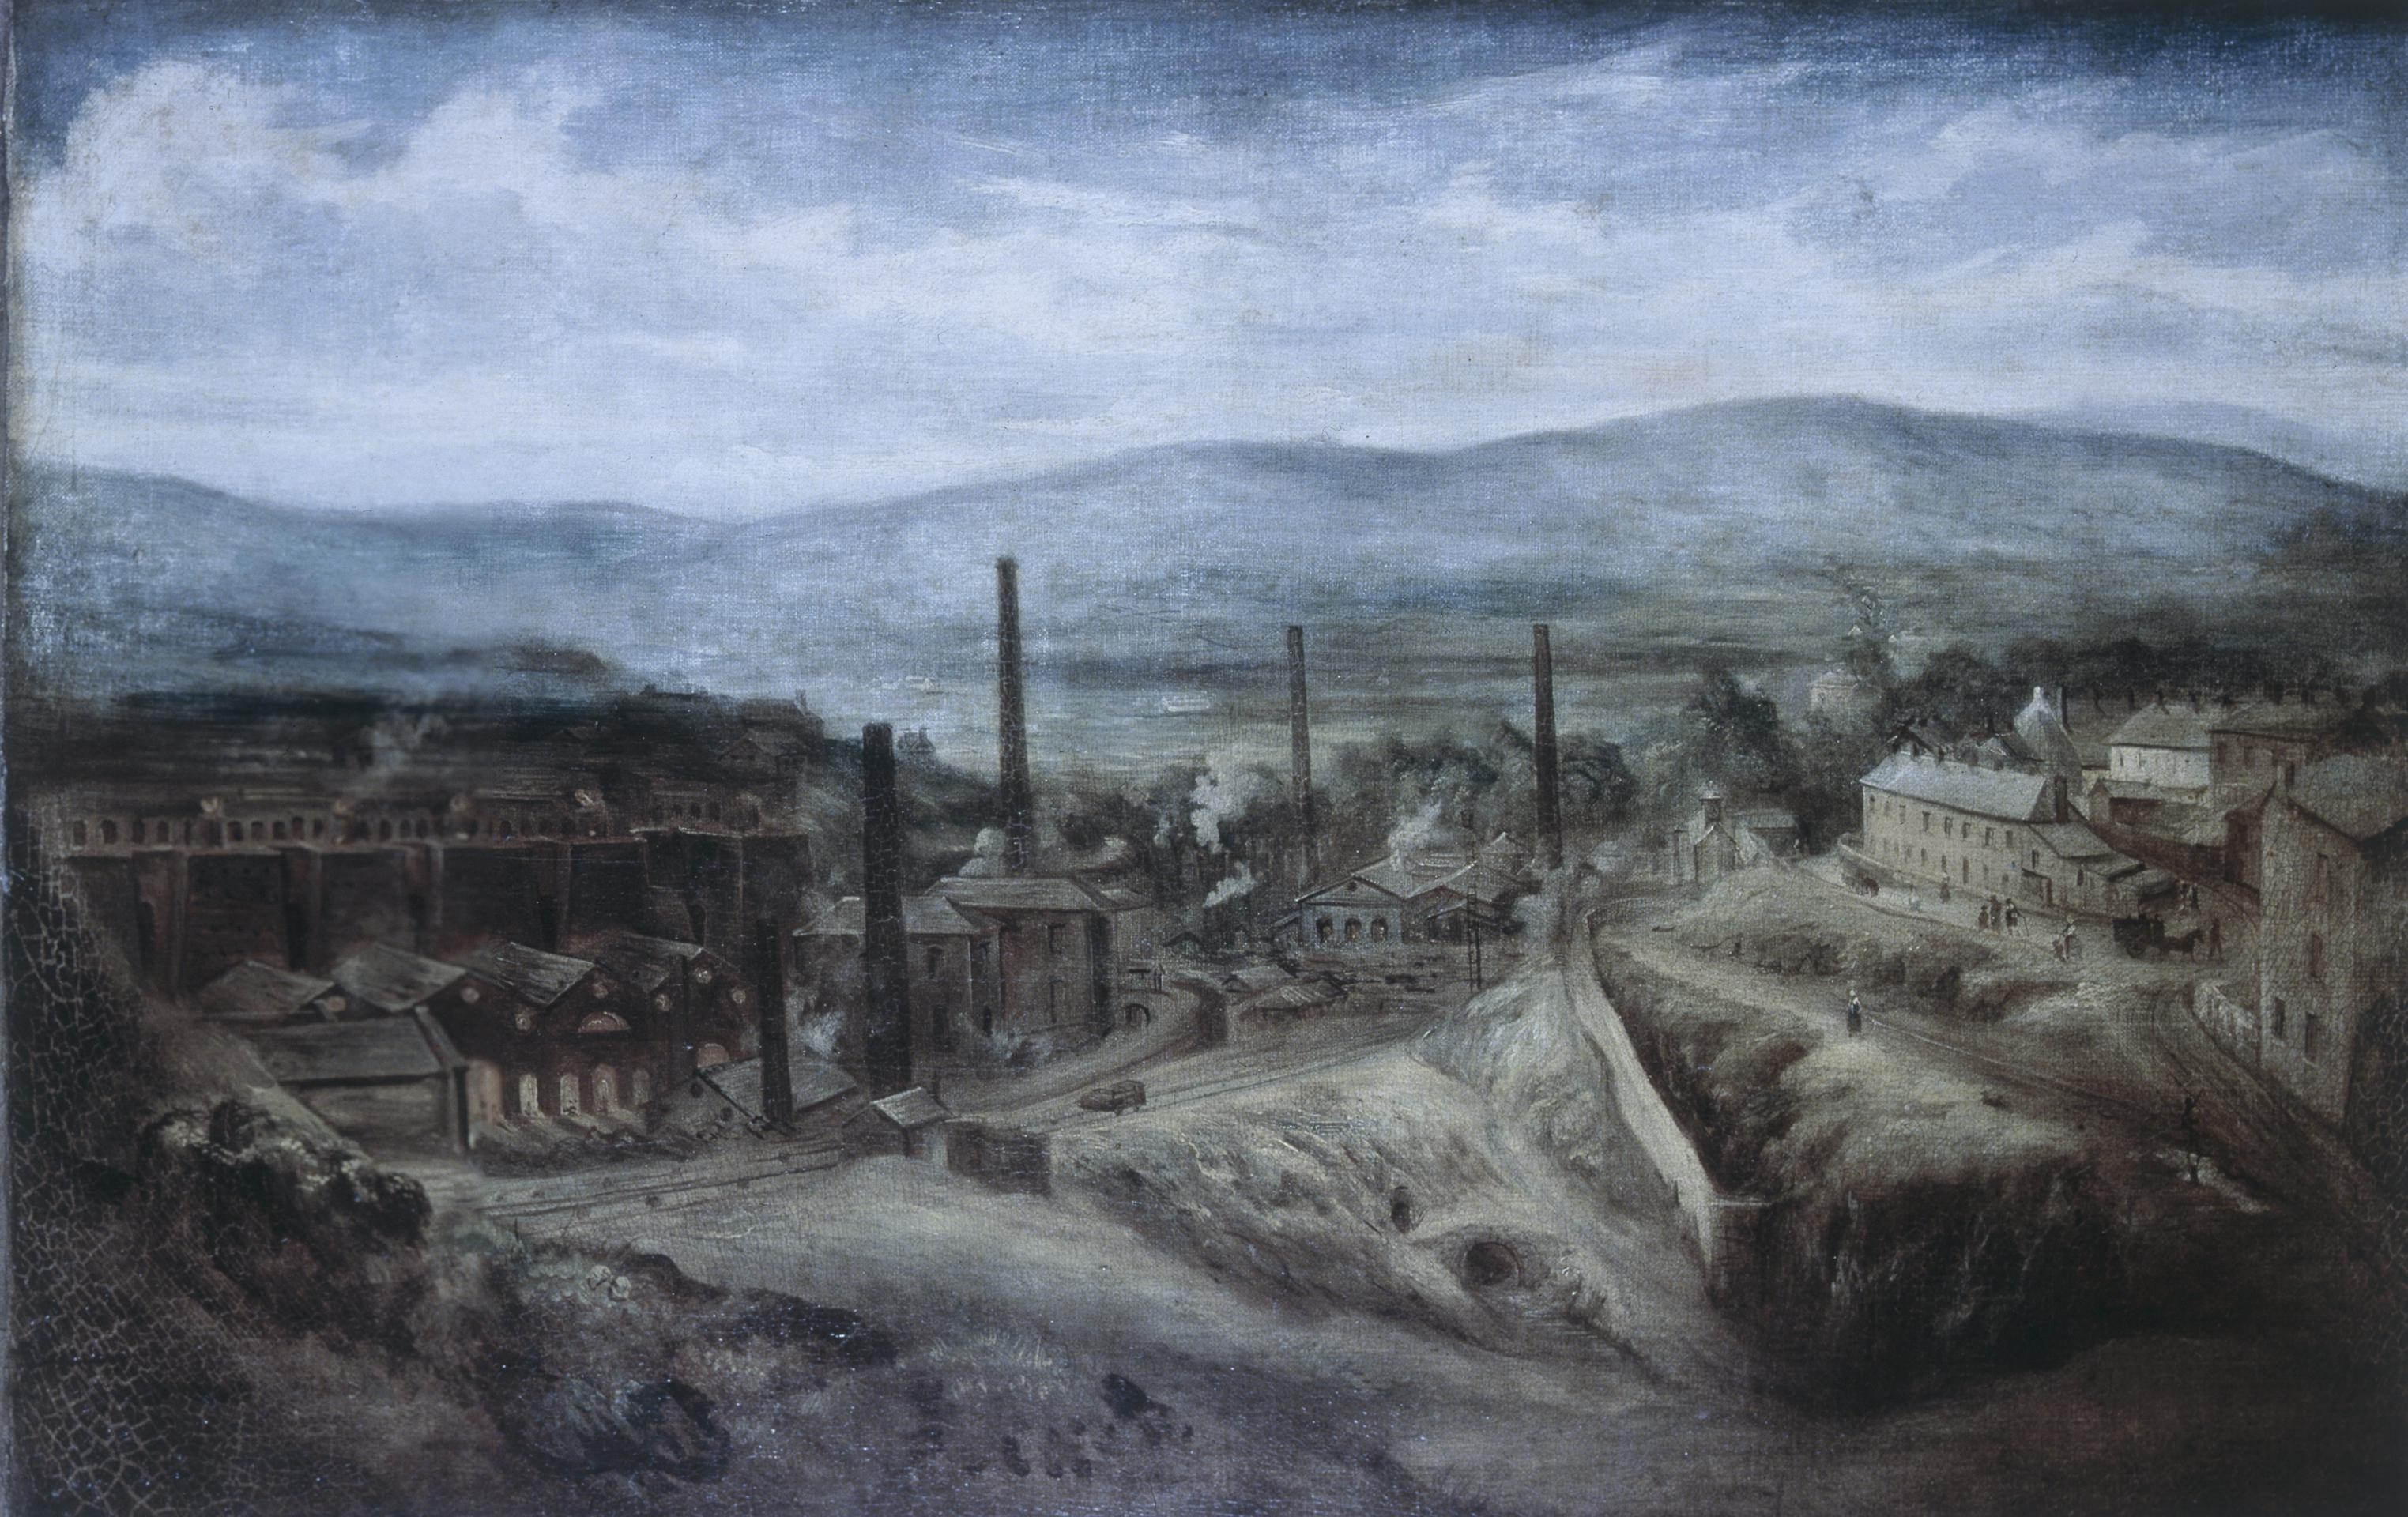 Open the image &lsquoColour transparancy of an oil painting of the Penydarren ironworks (NMW A 3797)'